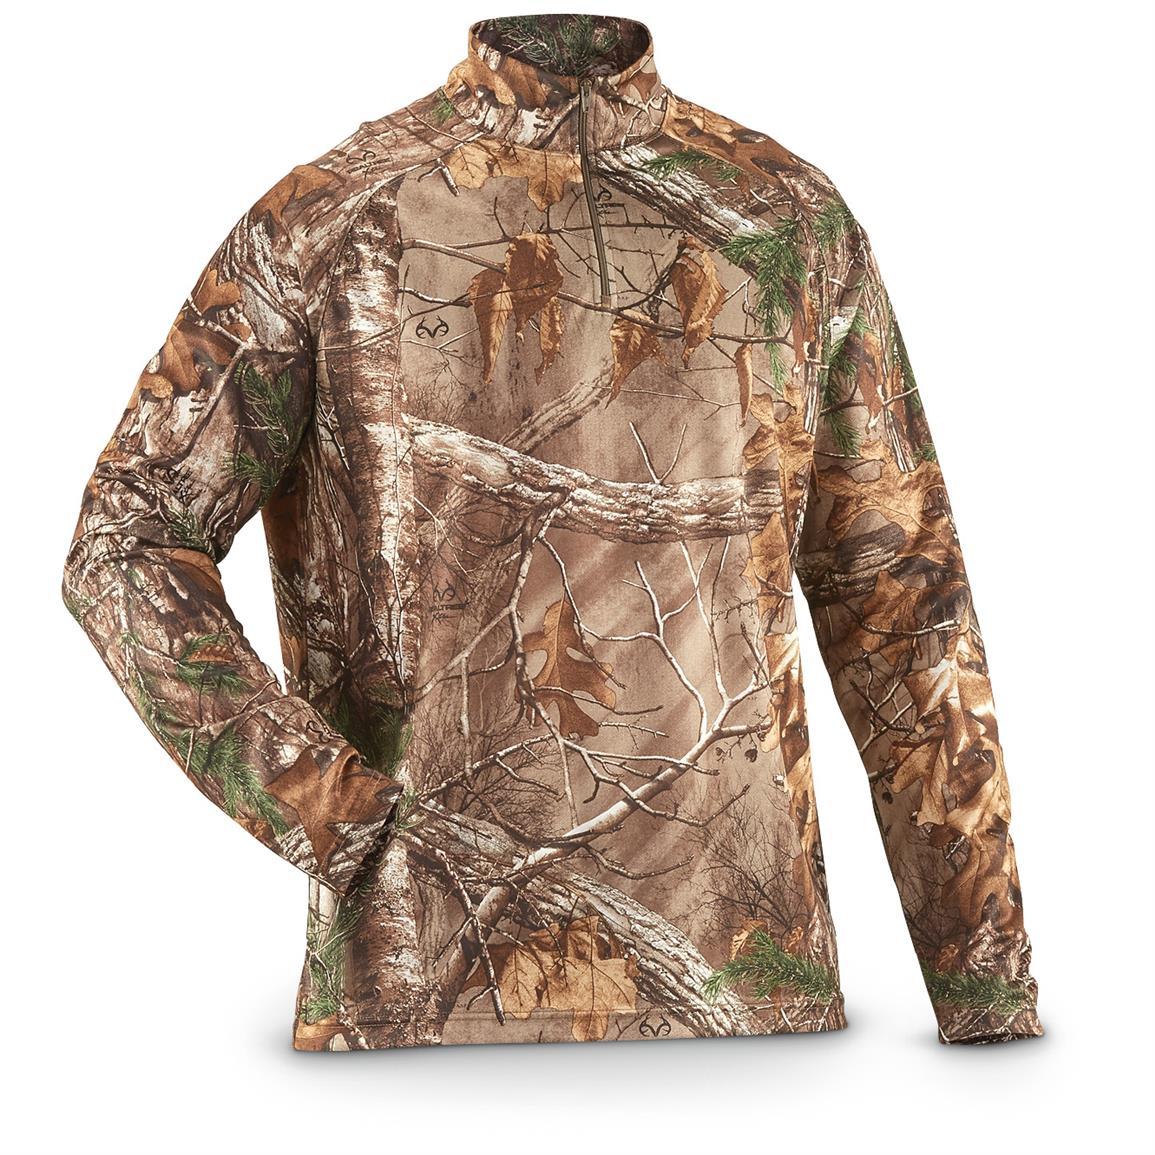 Guide Gear Men's Performance Hunting Camo 1/4 Zip Shirt, Realtree Xtra